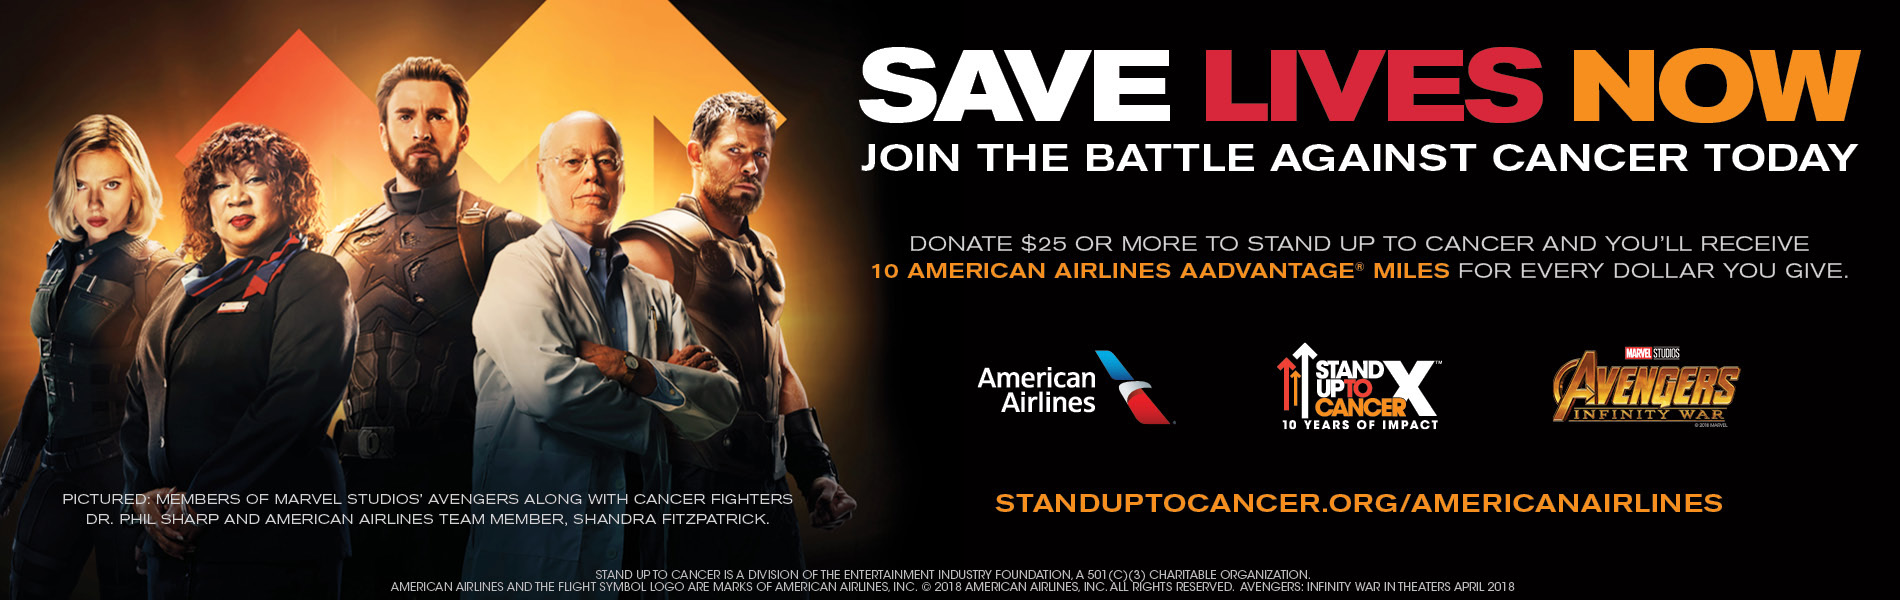 Image of Avengers. Text reads: Save Lives Now. Join the battle against cancer today